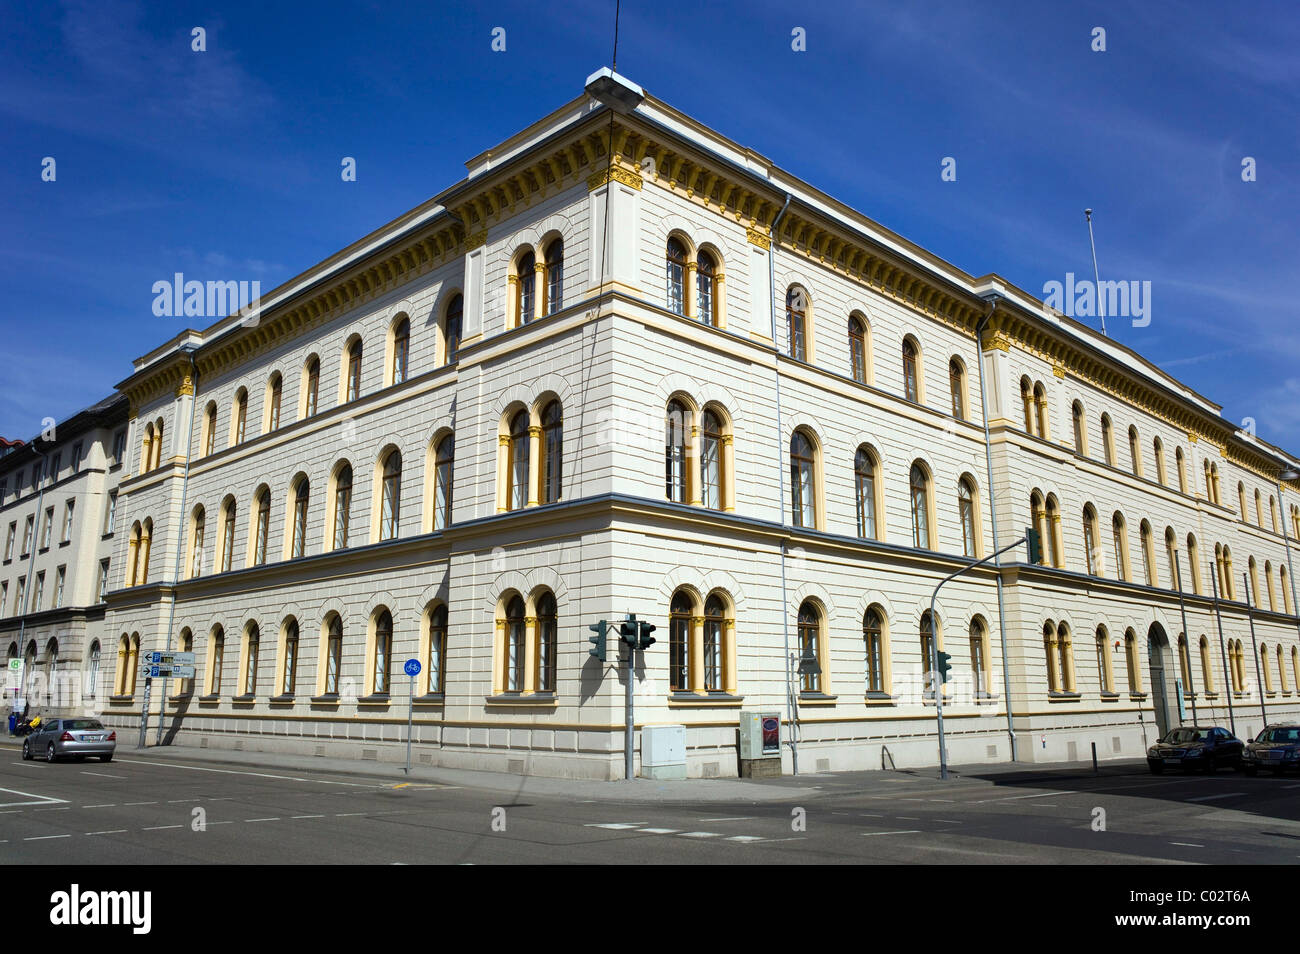 Hessian Ministry of Justice and integration and Europe, Wiesbaden, Hessen, Germany, Europe - Stock Image